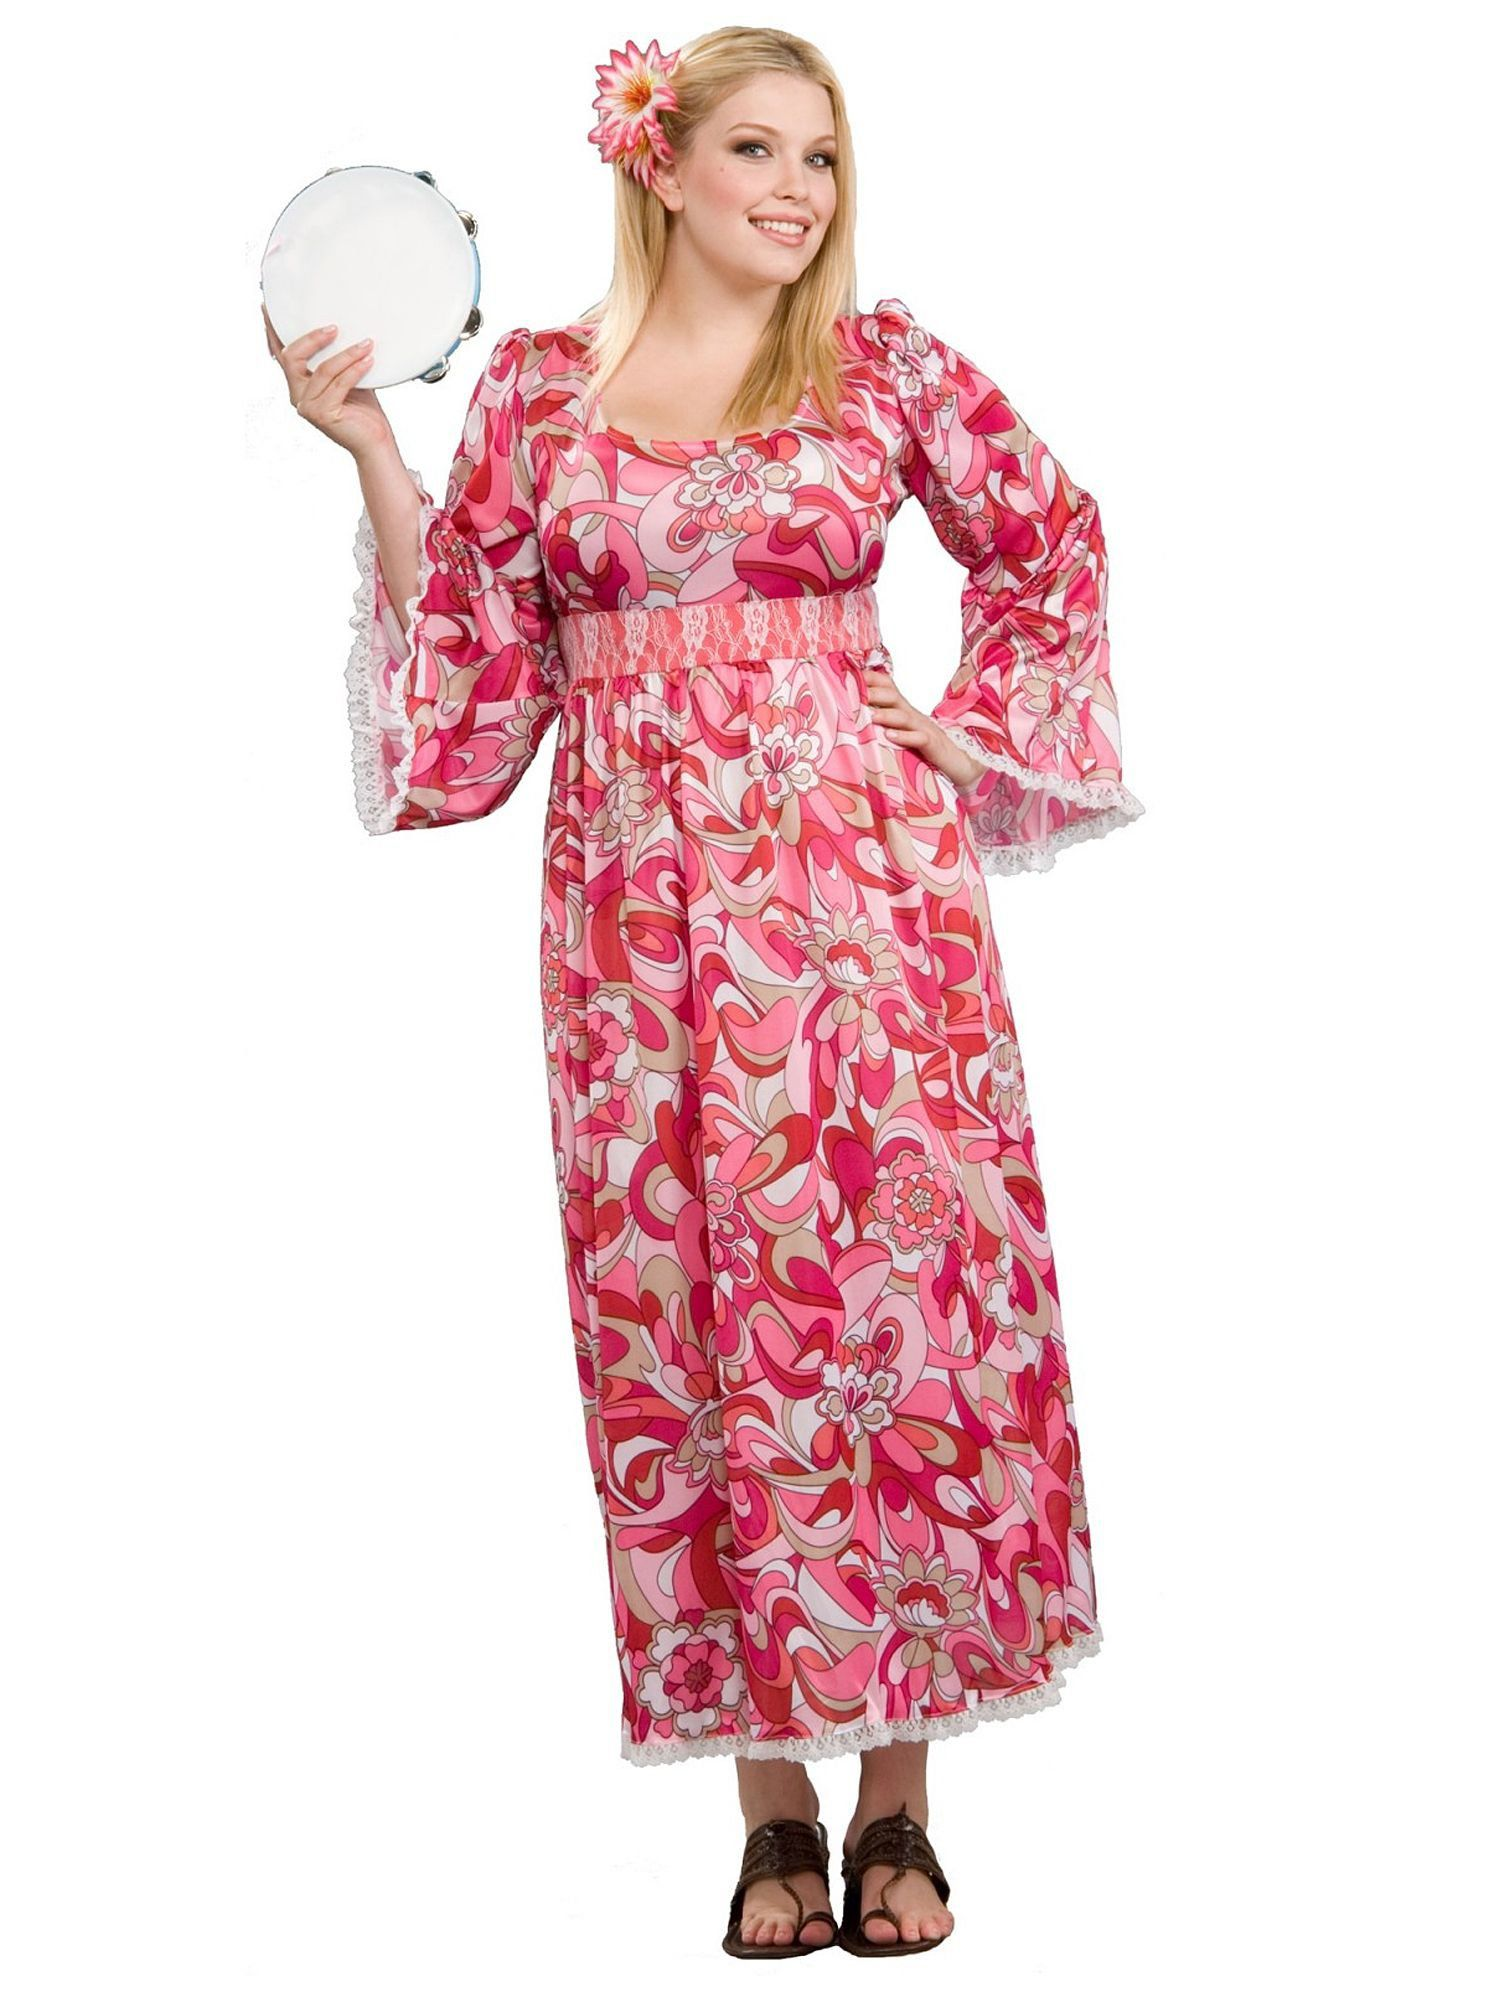 Womans Plus Size Hippie Flower Child Costume  sc 1 st  Wholesale Halloween Costumes & Hippie Flower Child Costume - Wholesale 70s Adult Costumes